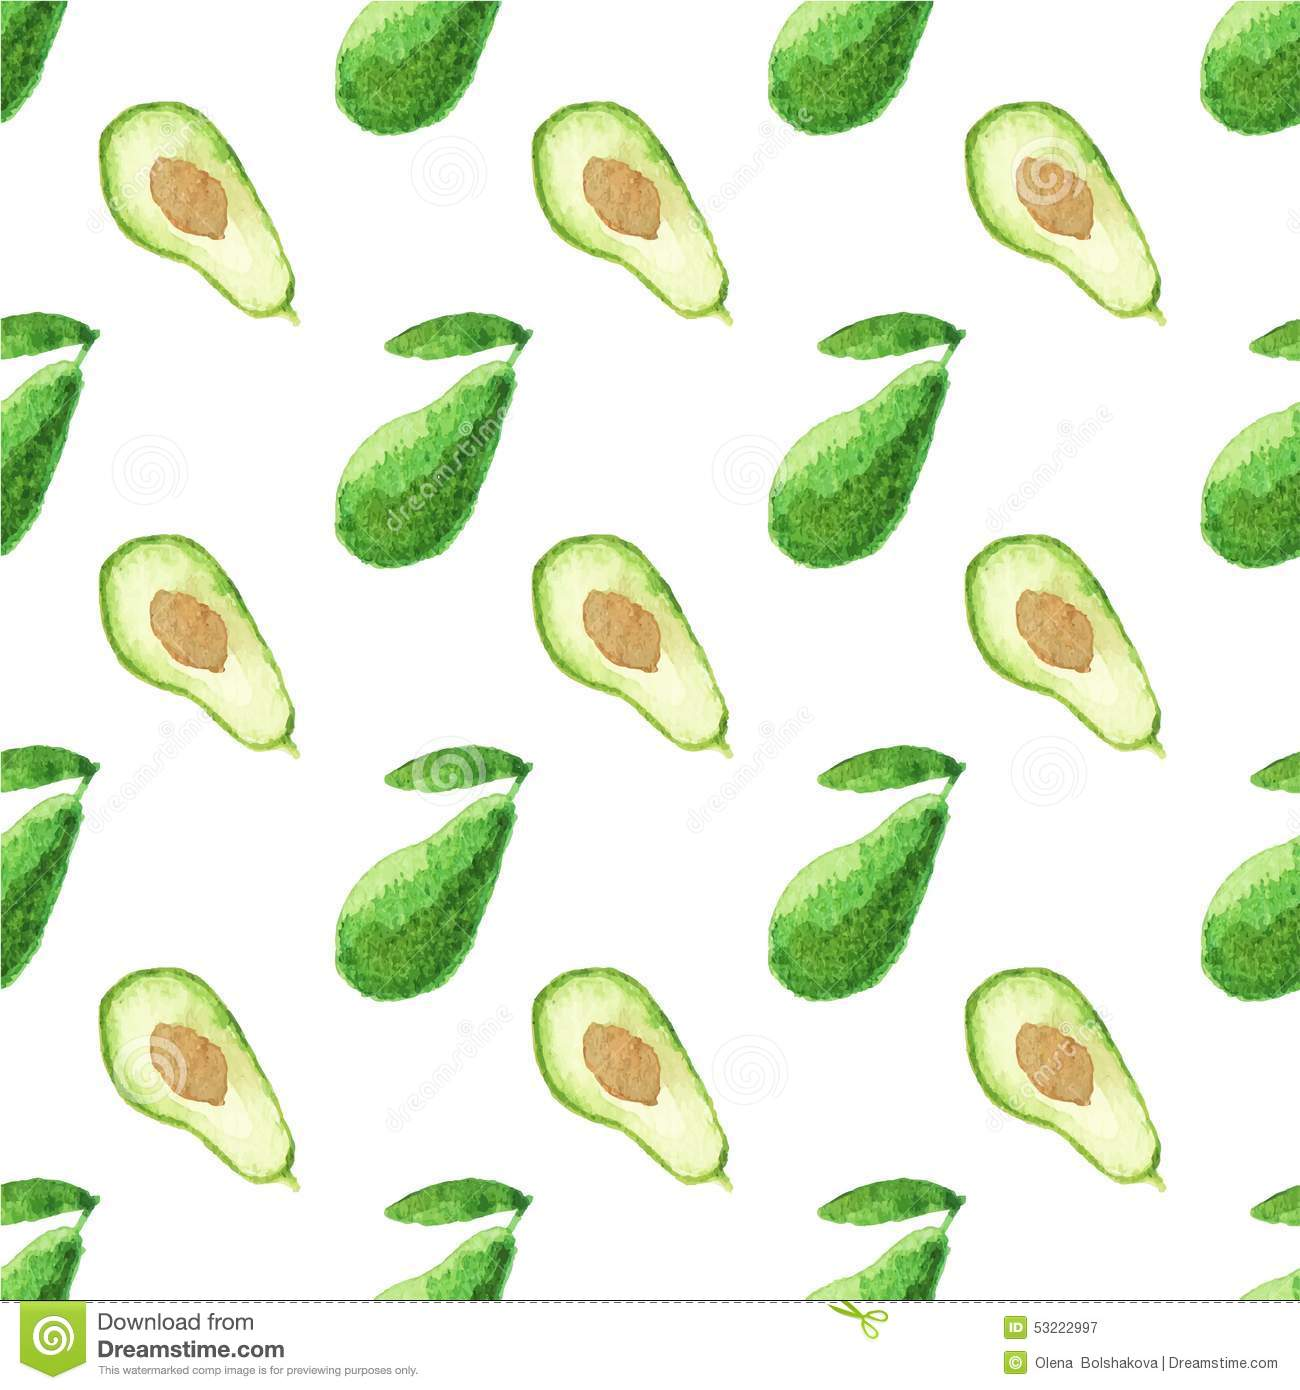 Seamless Watercolor Pattern With Avocado On The Stock Vector - Image ...